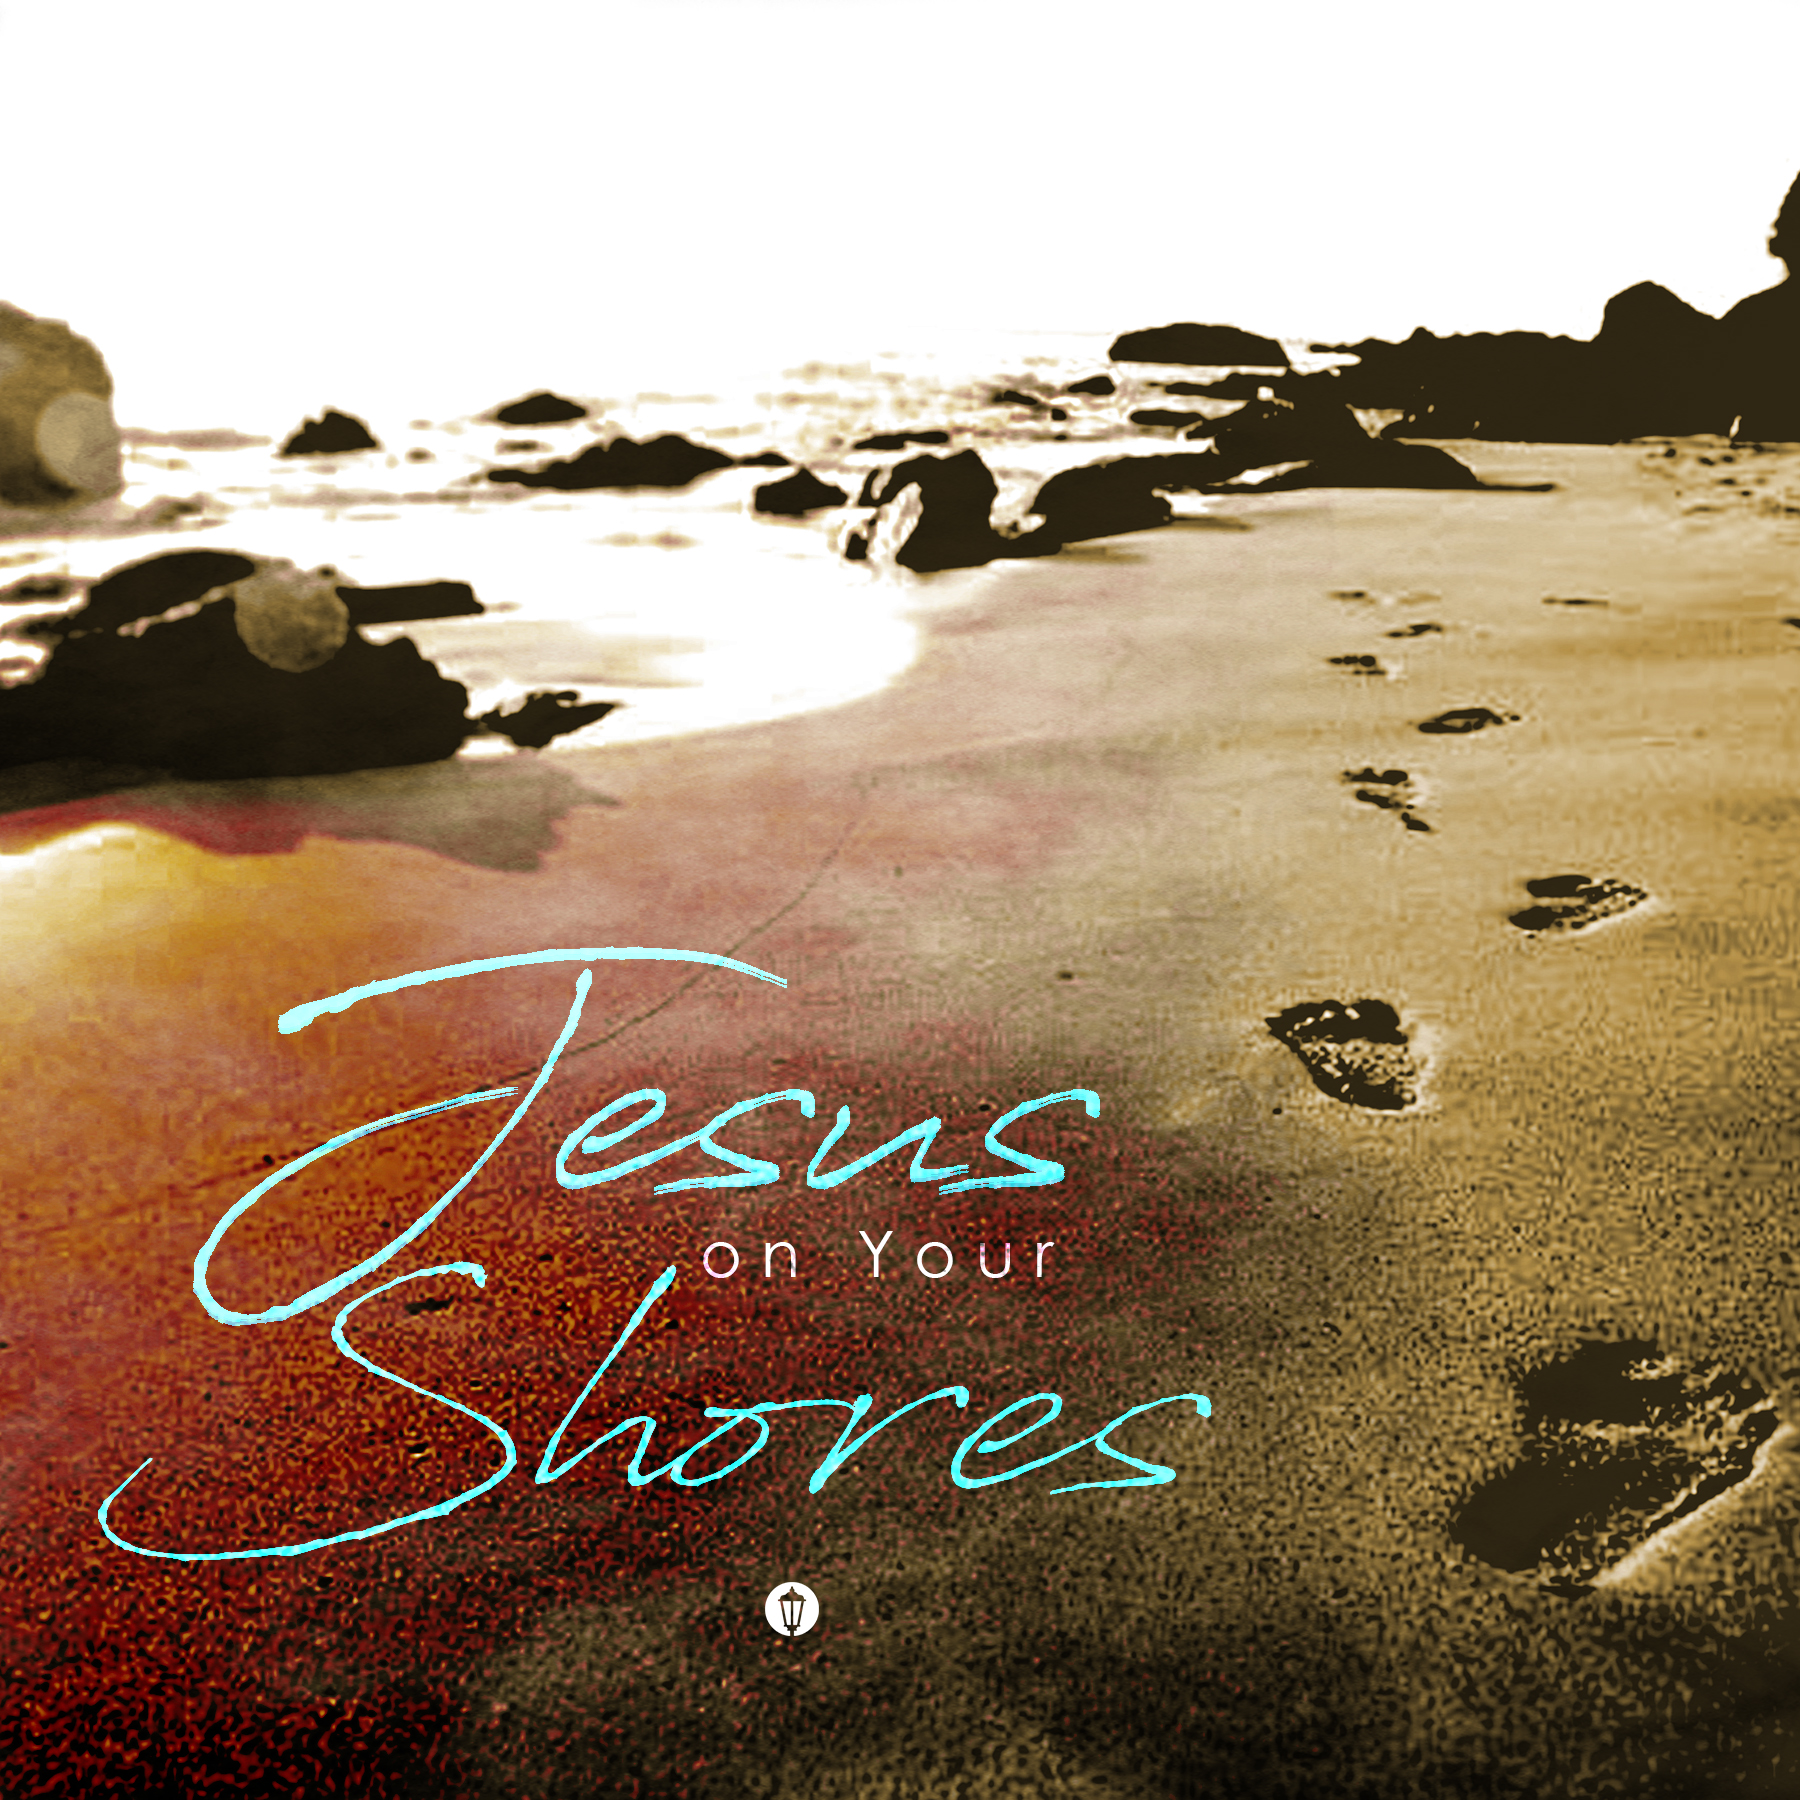 JESUS On Your Shores - IG.jpg